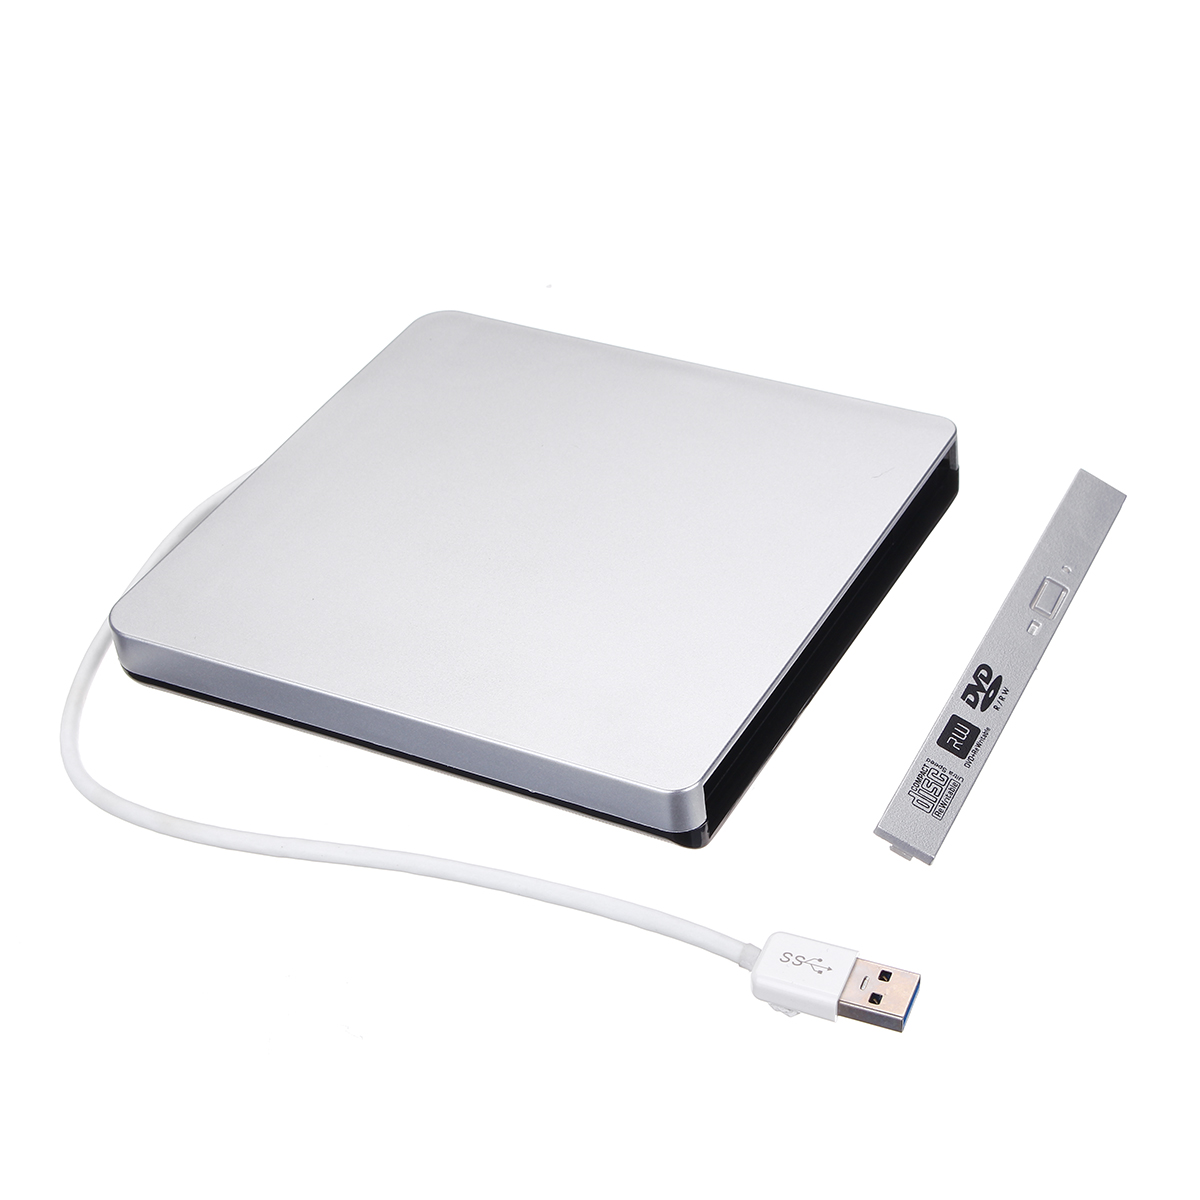 USB 3.0 SATA 9.5mm External Enclosure Case For Laptop C